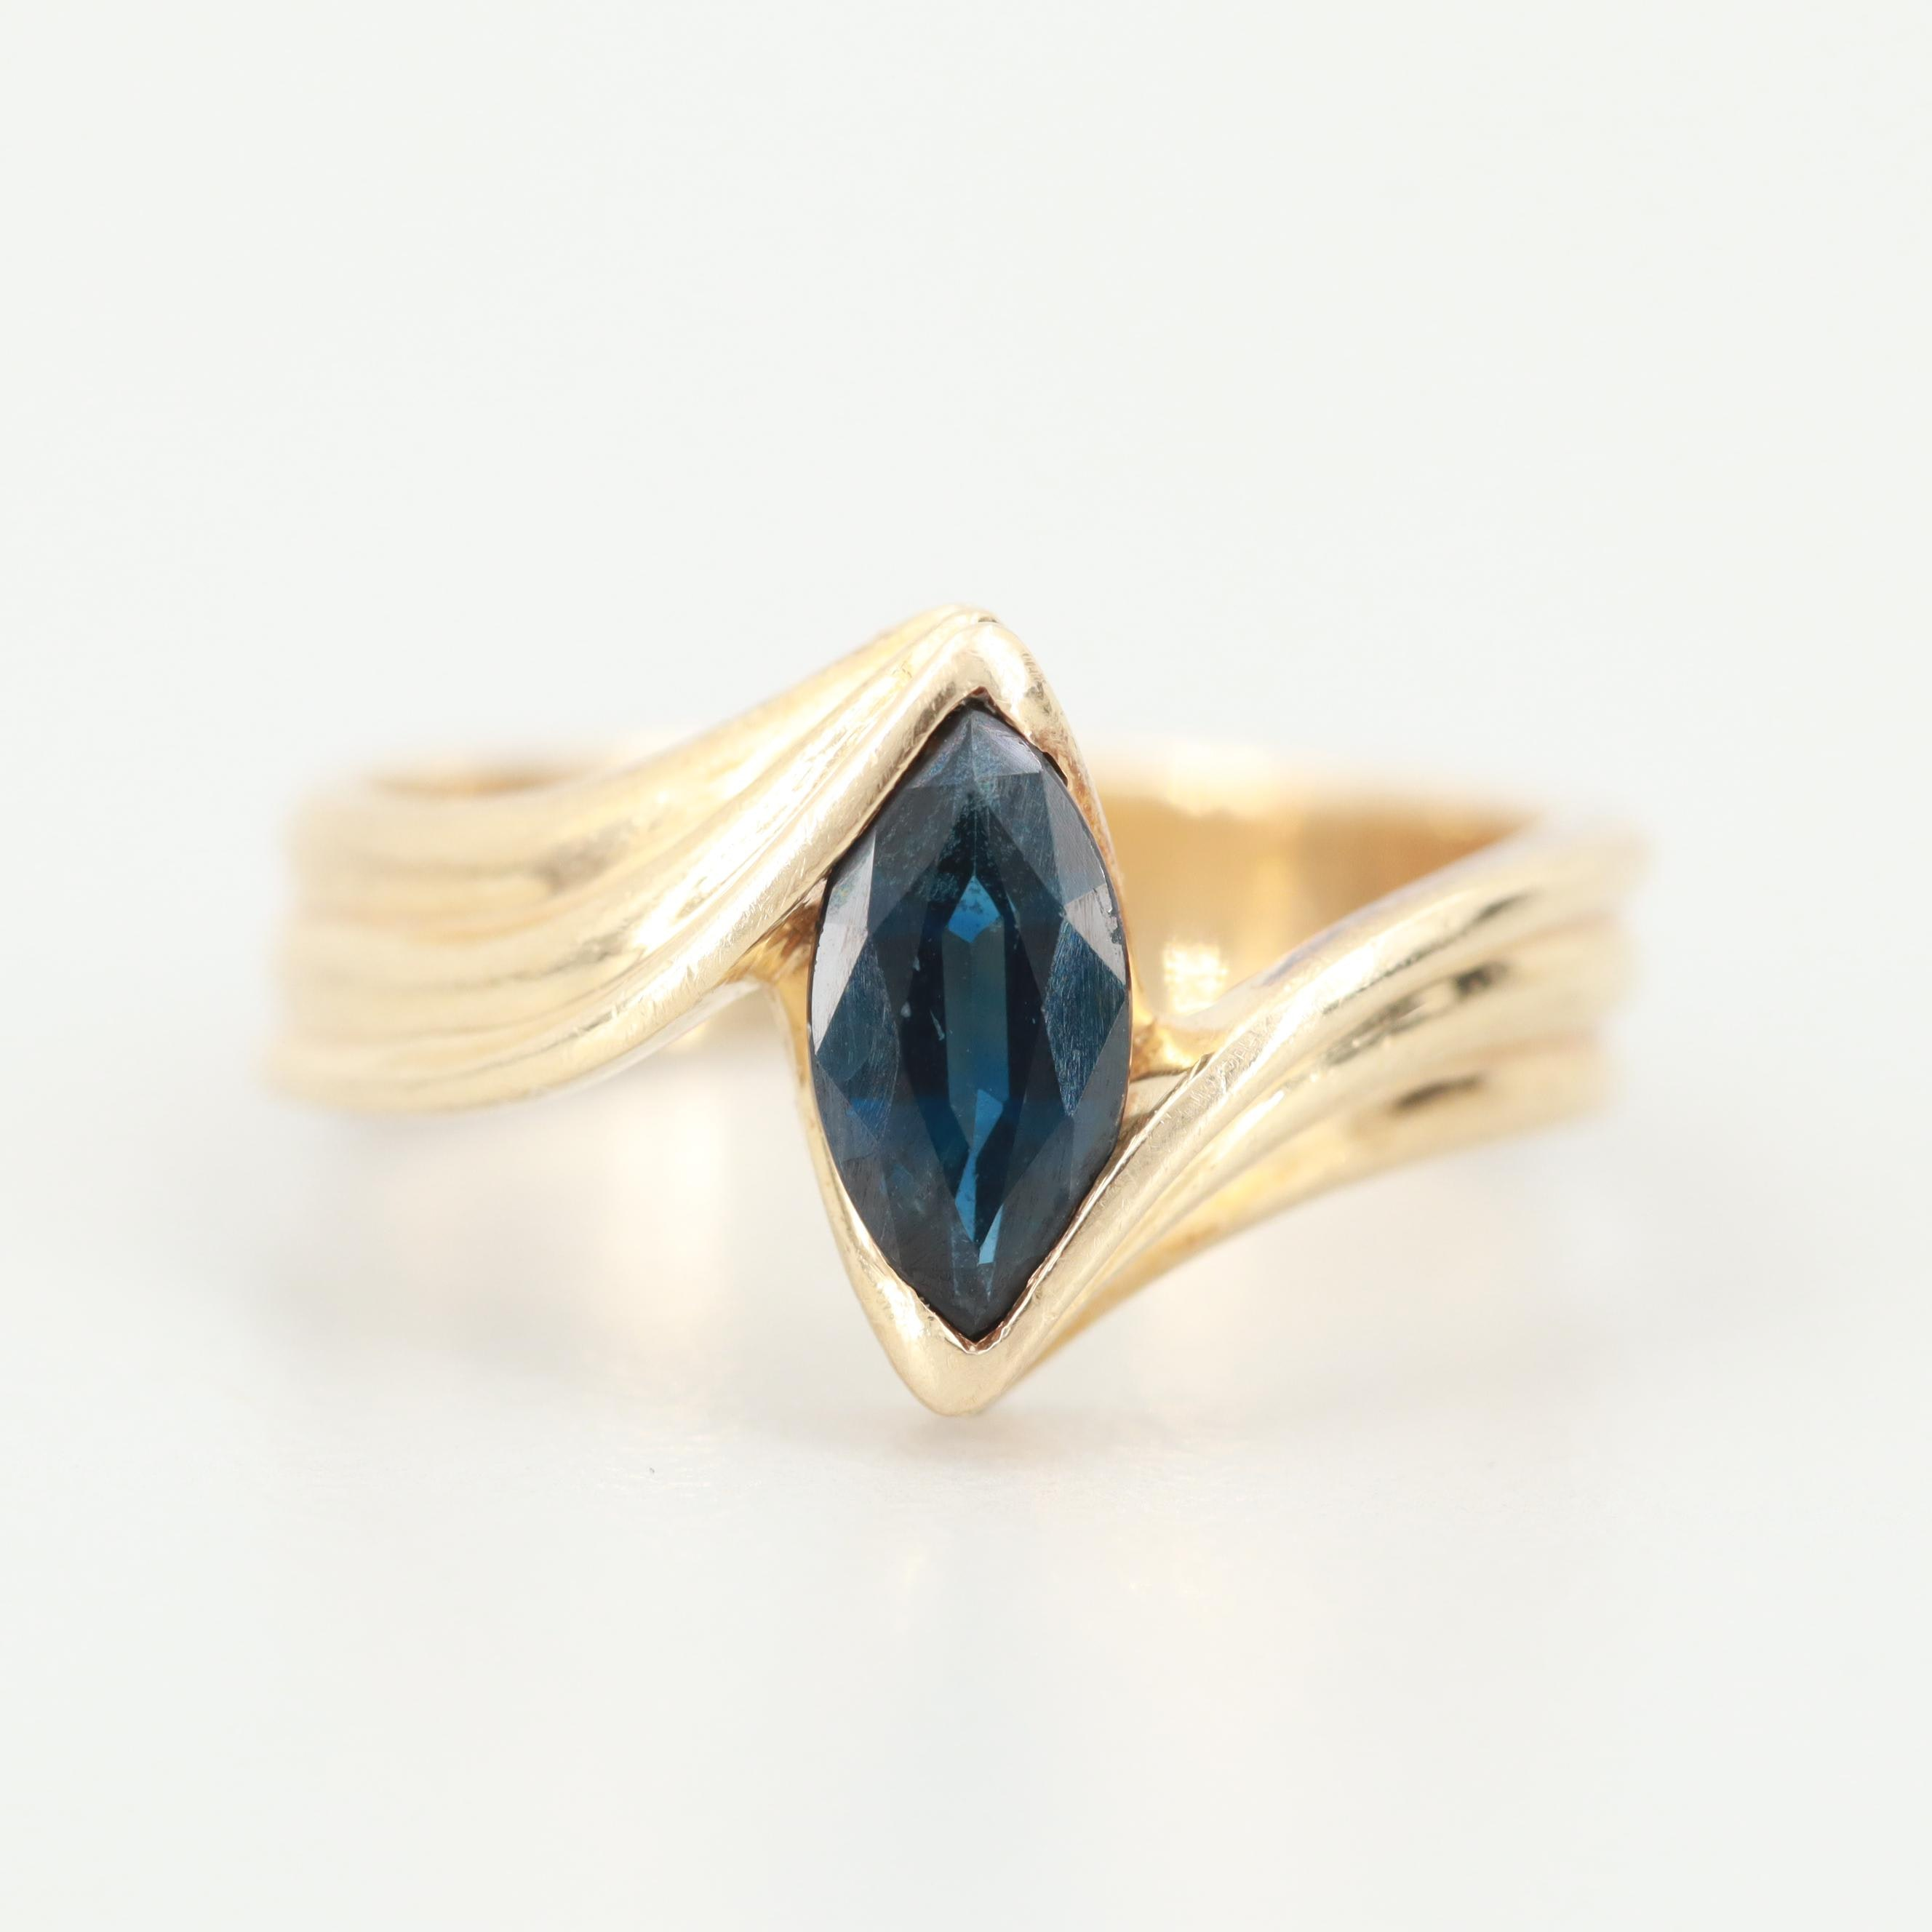 14K Yellow Gold Sapphire Ring with Euro Shank